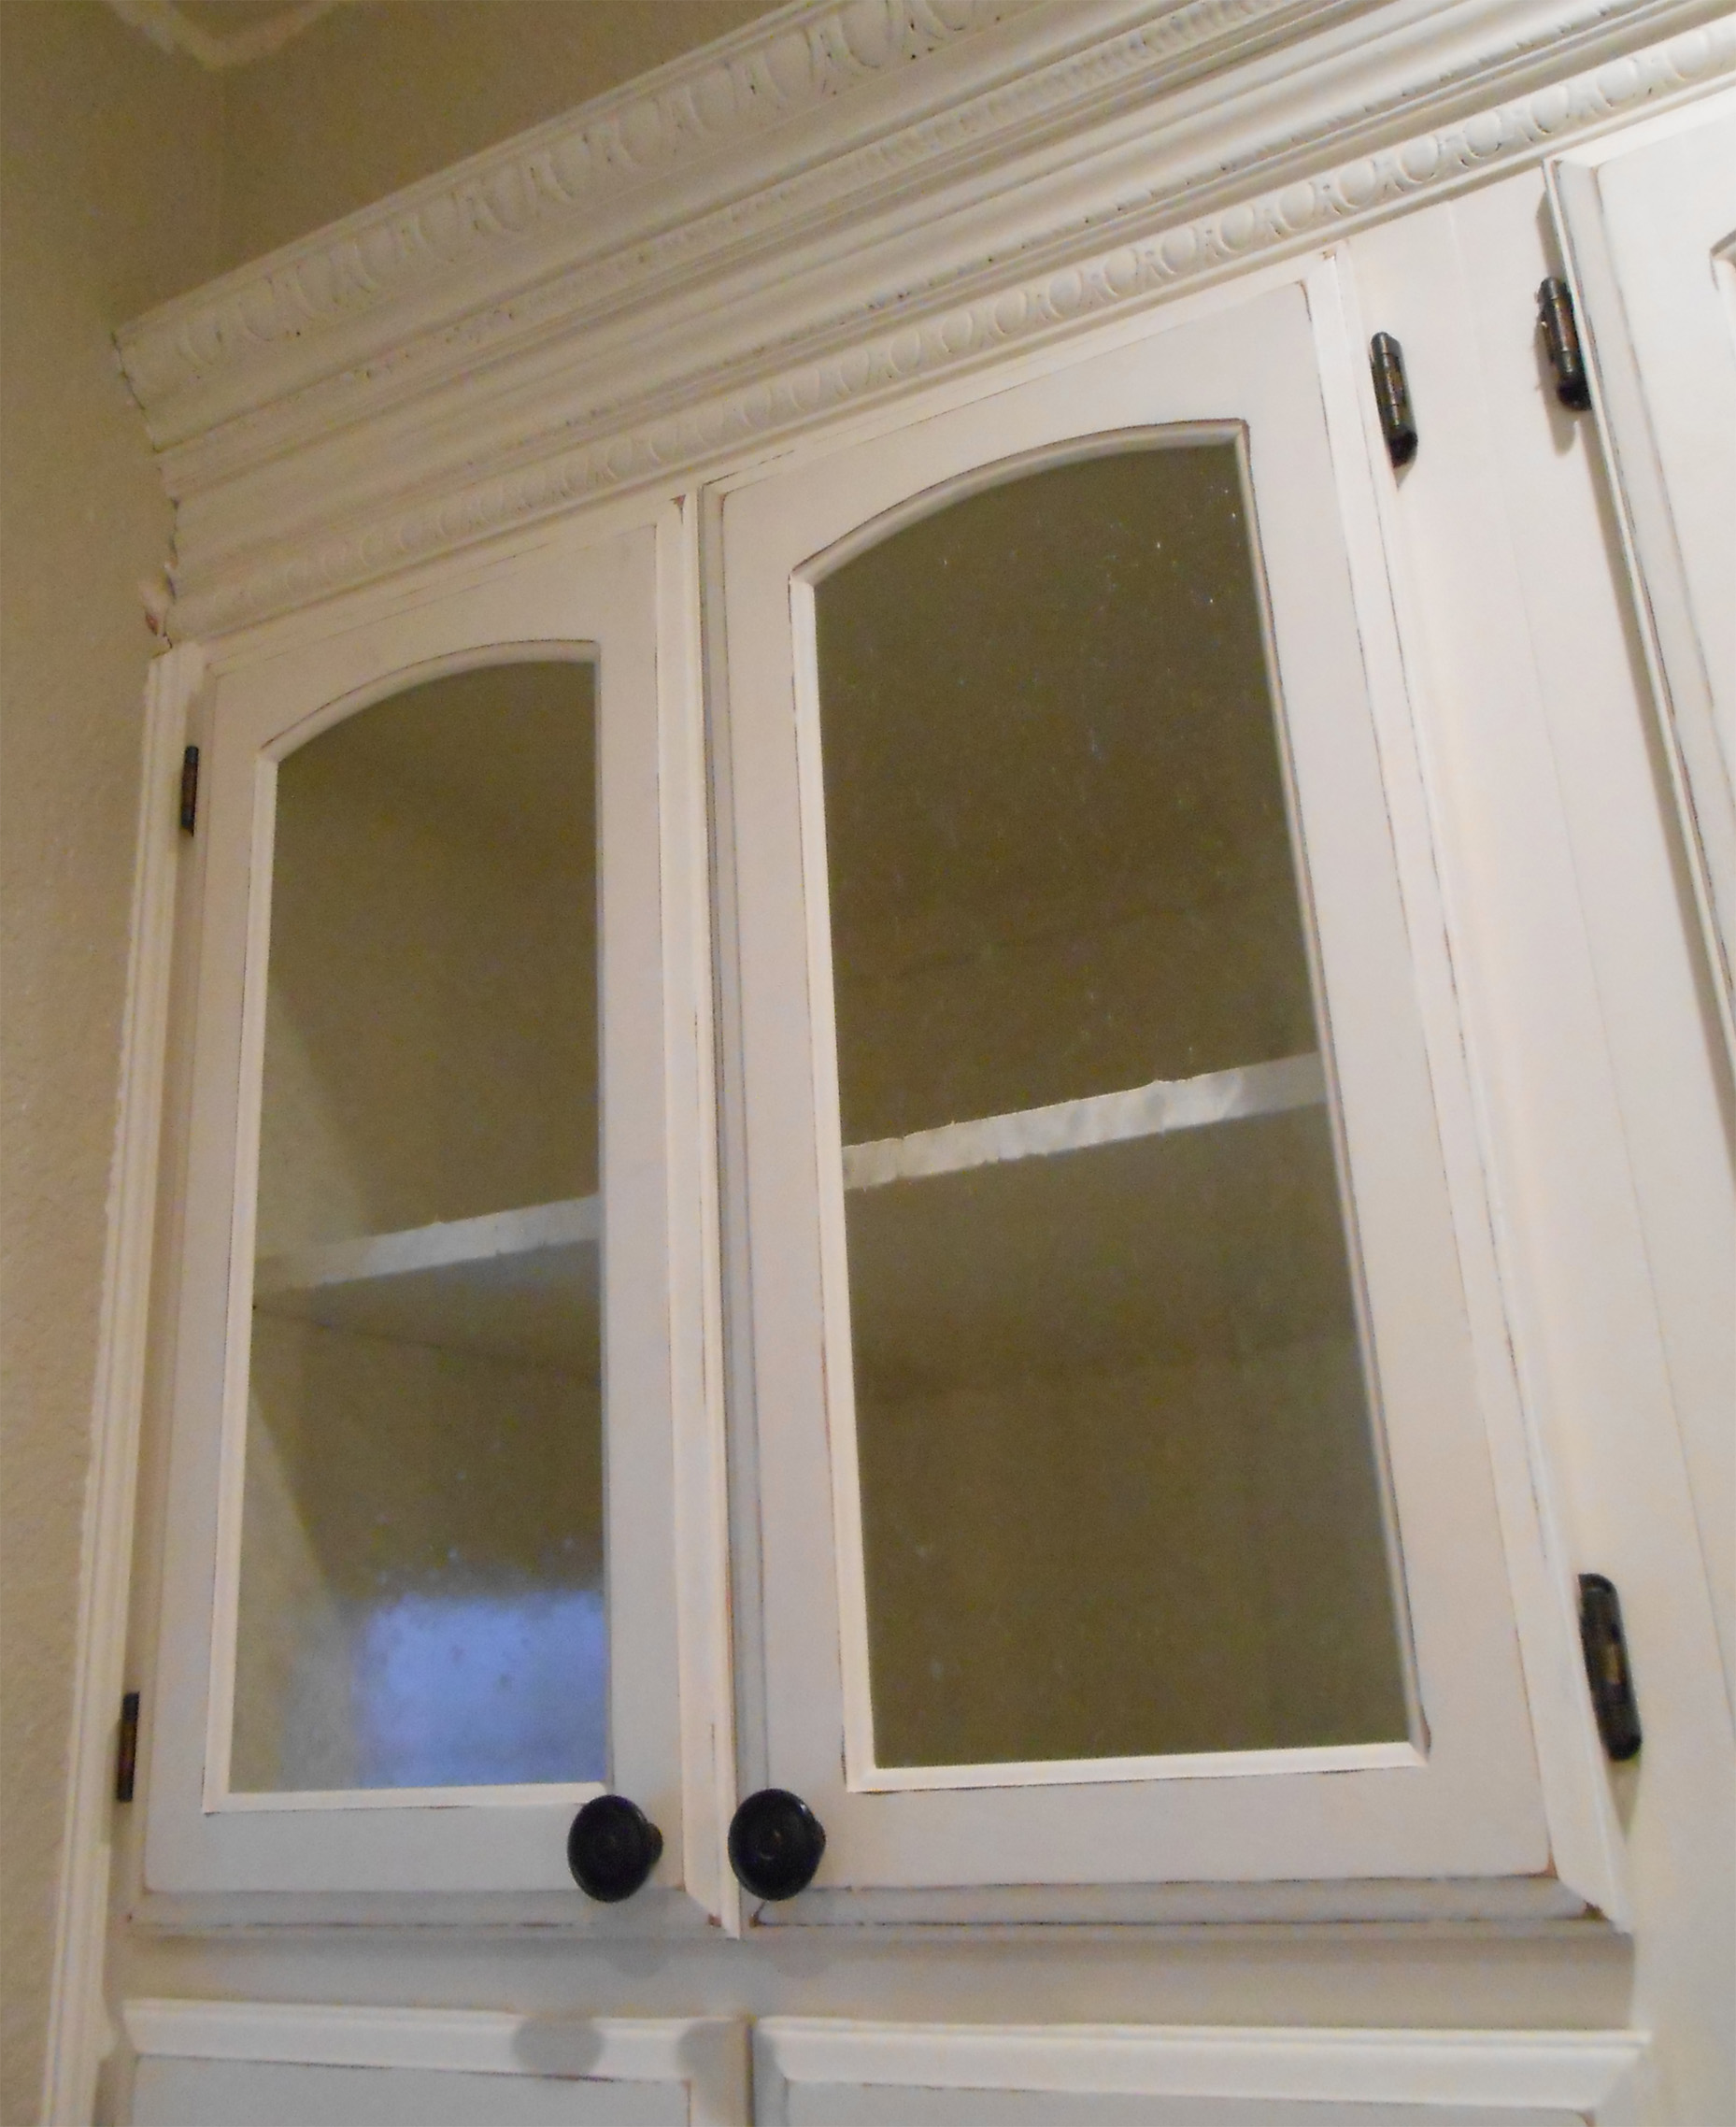 How To Put Glass In Kitchen Cabinet Doors: DIY Changing Solid Cabinet Doors To Glass Inserts